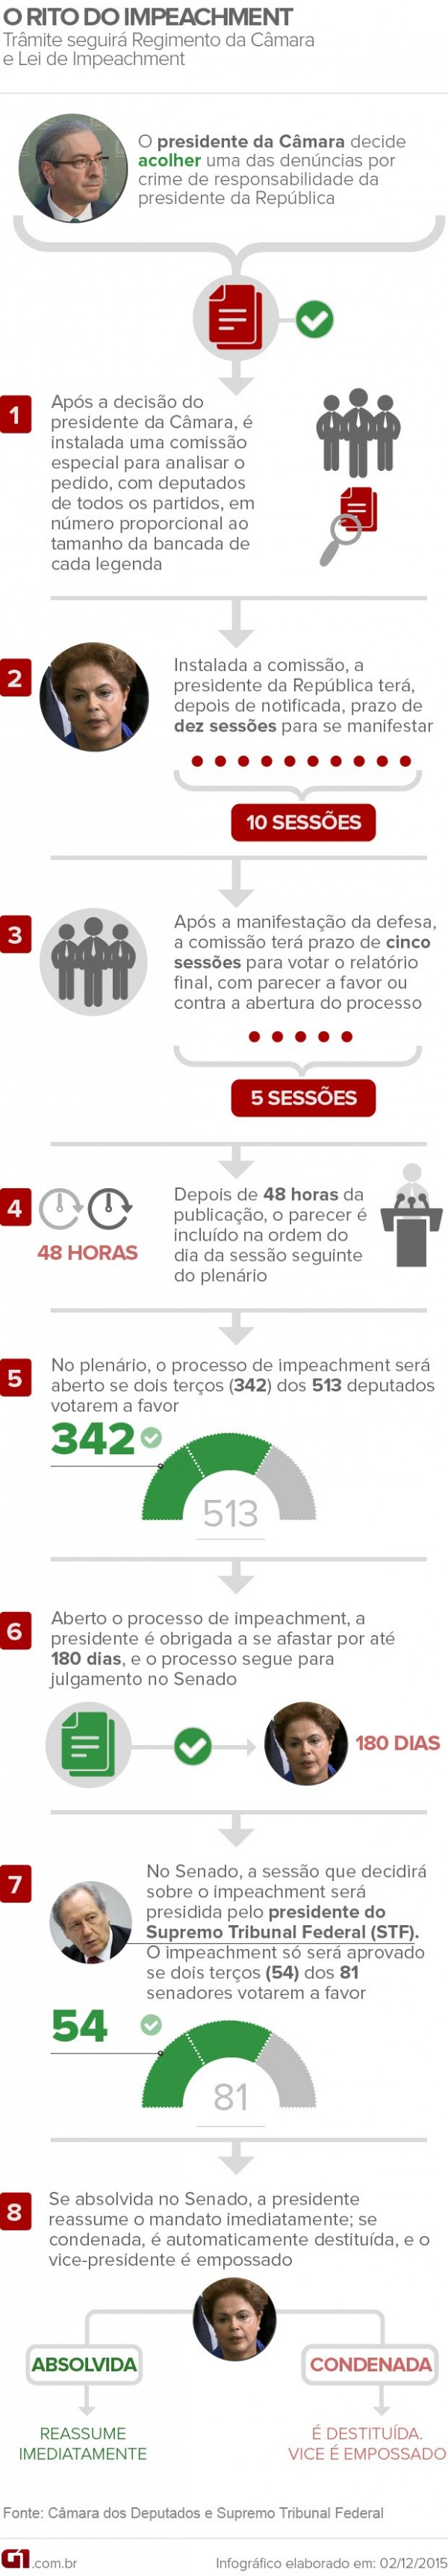 infografico rito impeachment